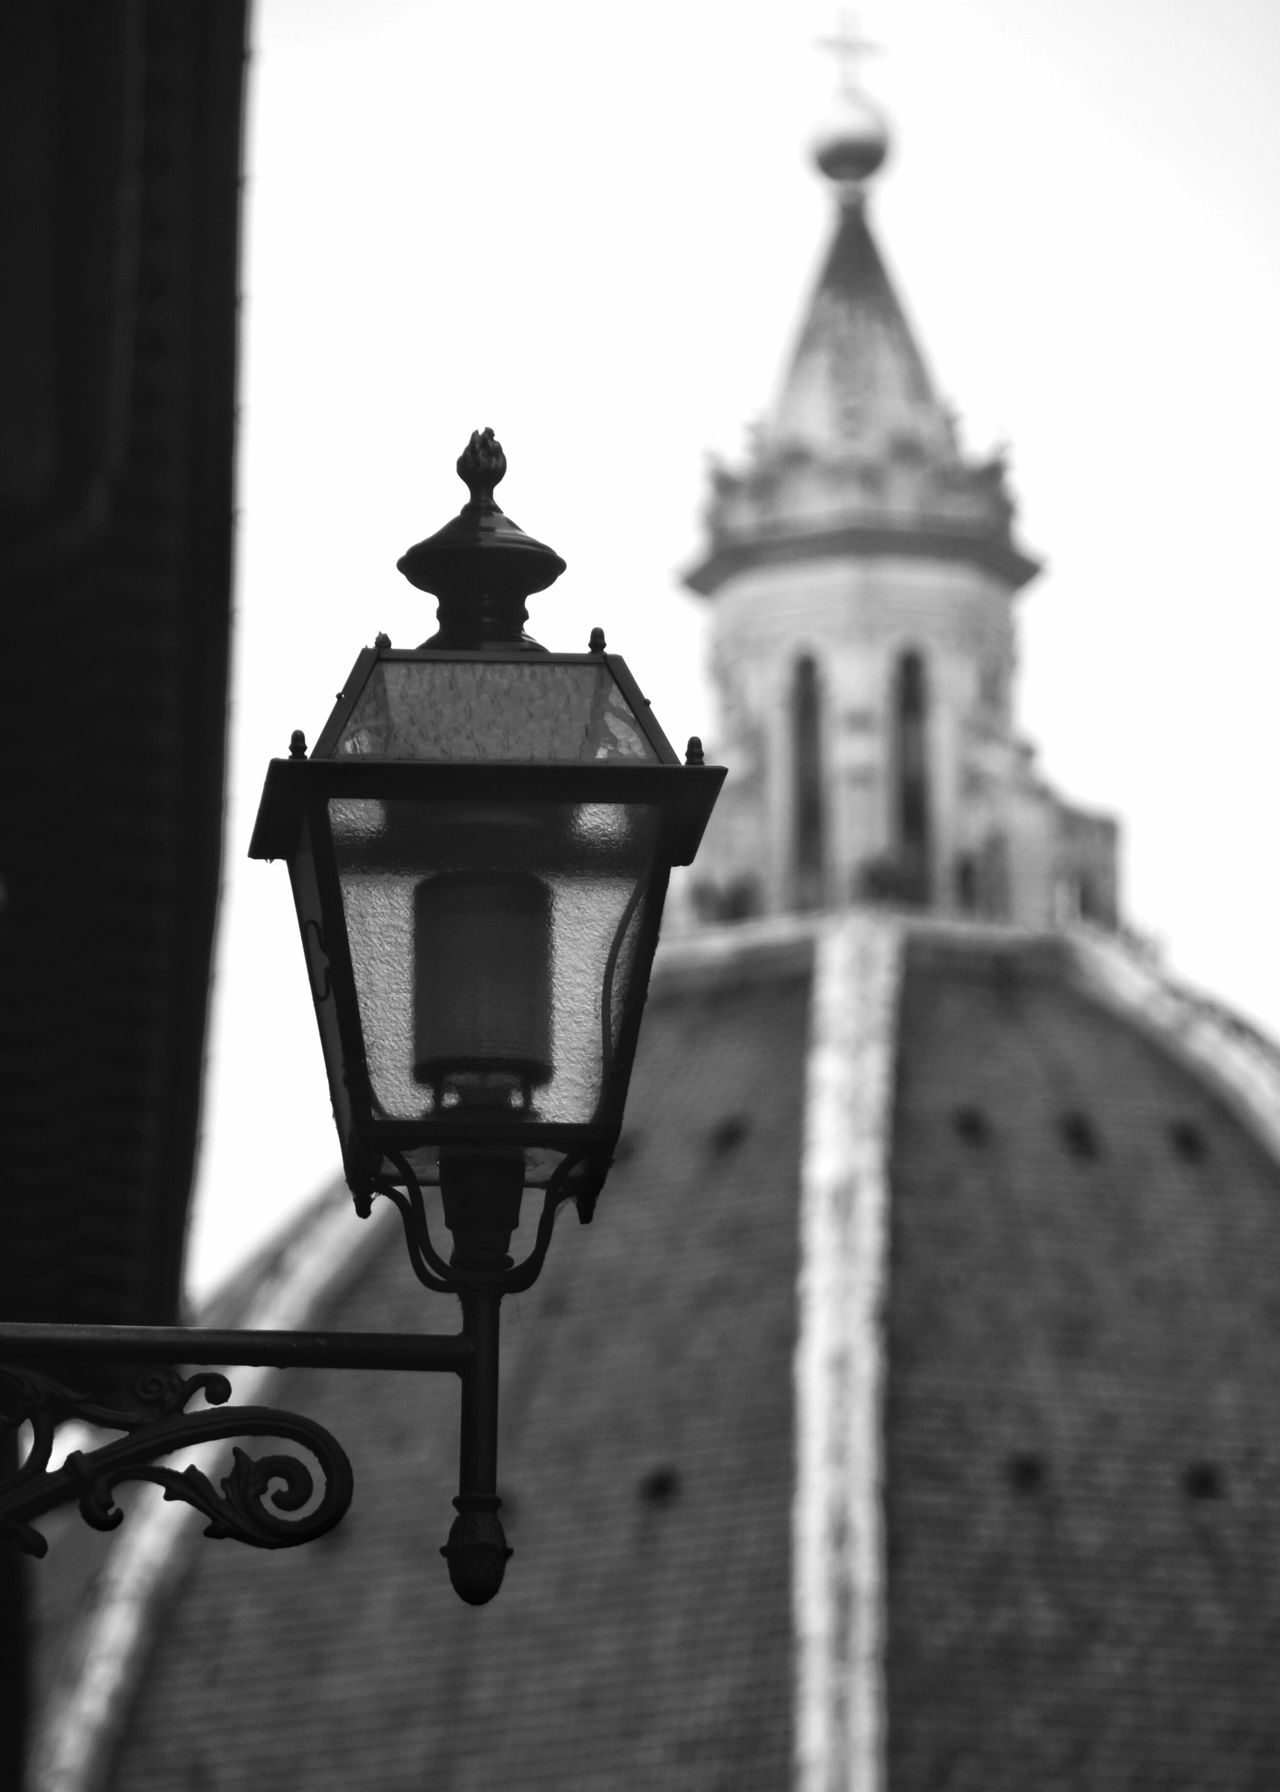 Full Length Streetphoto_bw Streetphotography Black & White Photography Black And White Street Photography Blackandwhite Photography Close-up Travel Destinations Architecture Firenze Built Structure Building Exterior The City Light